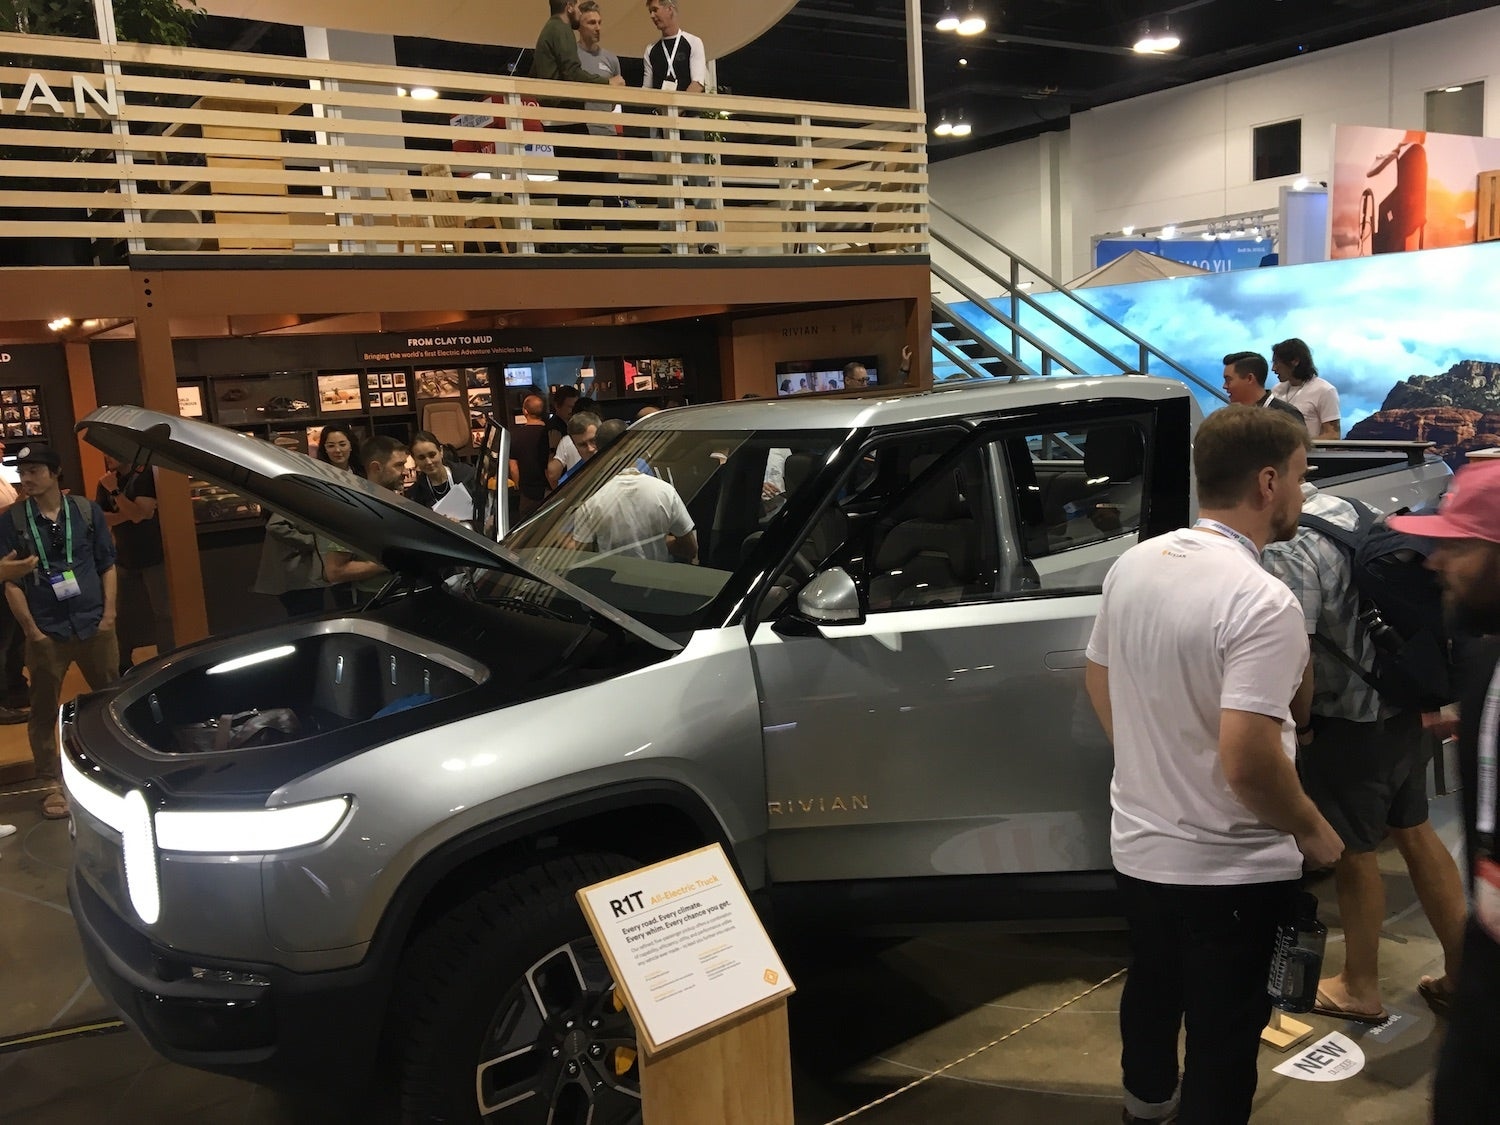 the rivan R1 truck on the show floor of summer OR